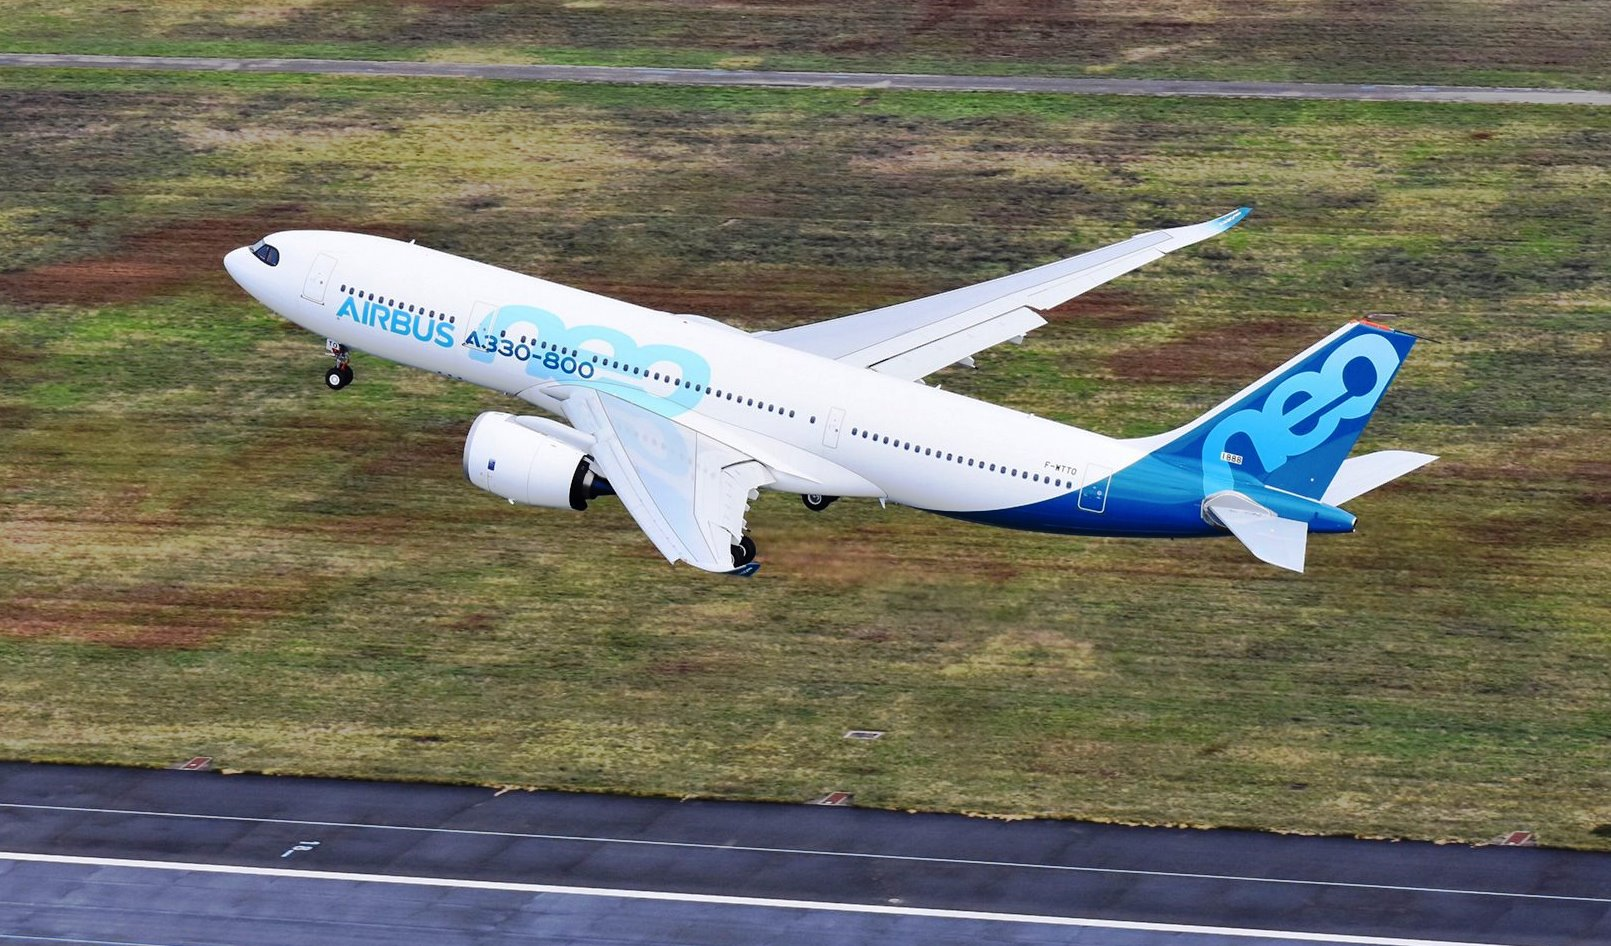 Airbus A330-800 first flight - Leeham News and Analysis